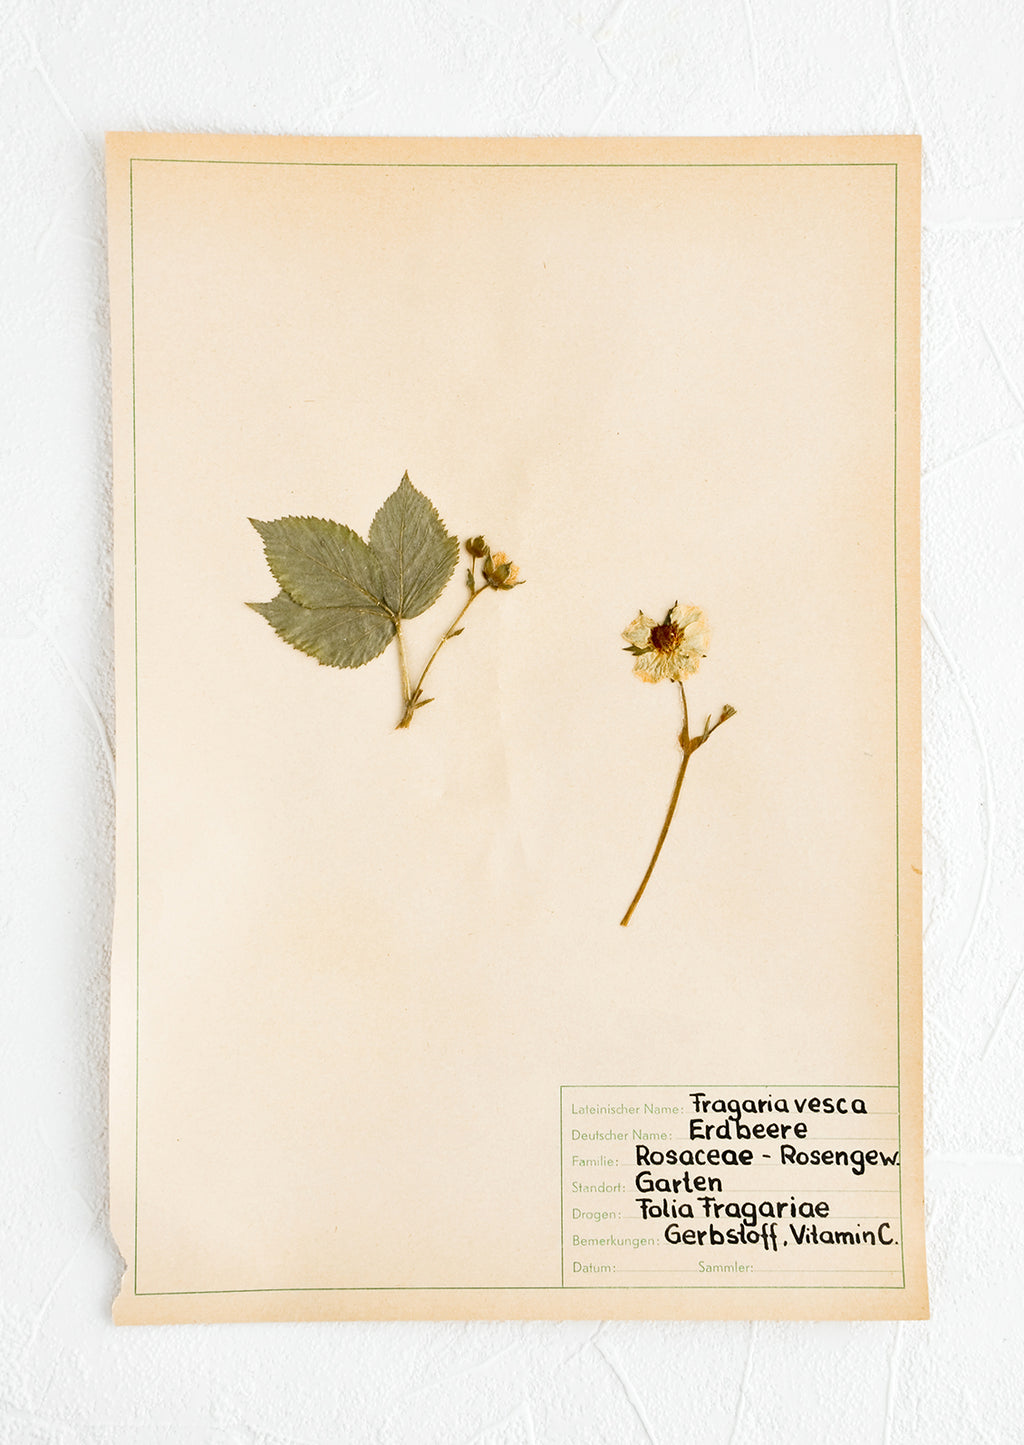 1: One hundred year old dried floral specimen (wild strawberry) on paper, used as artwork